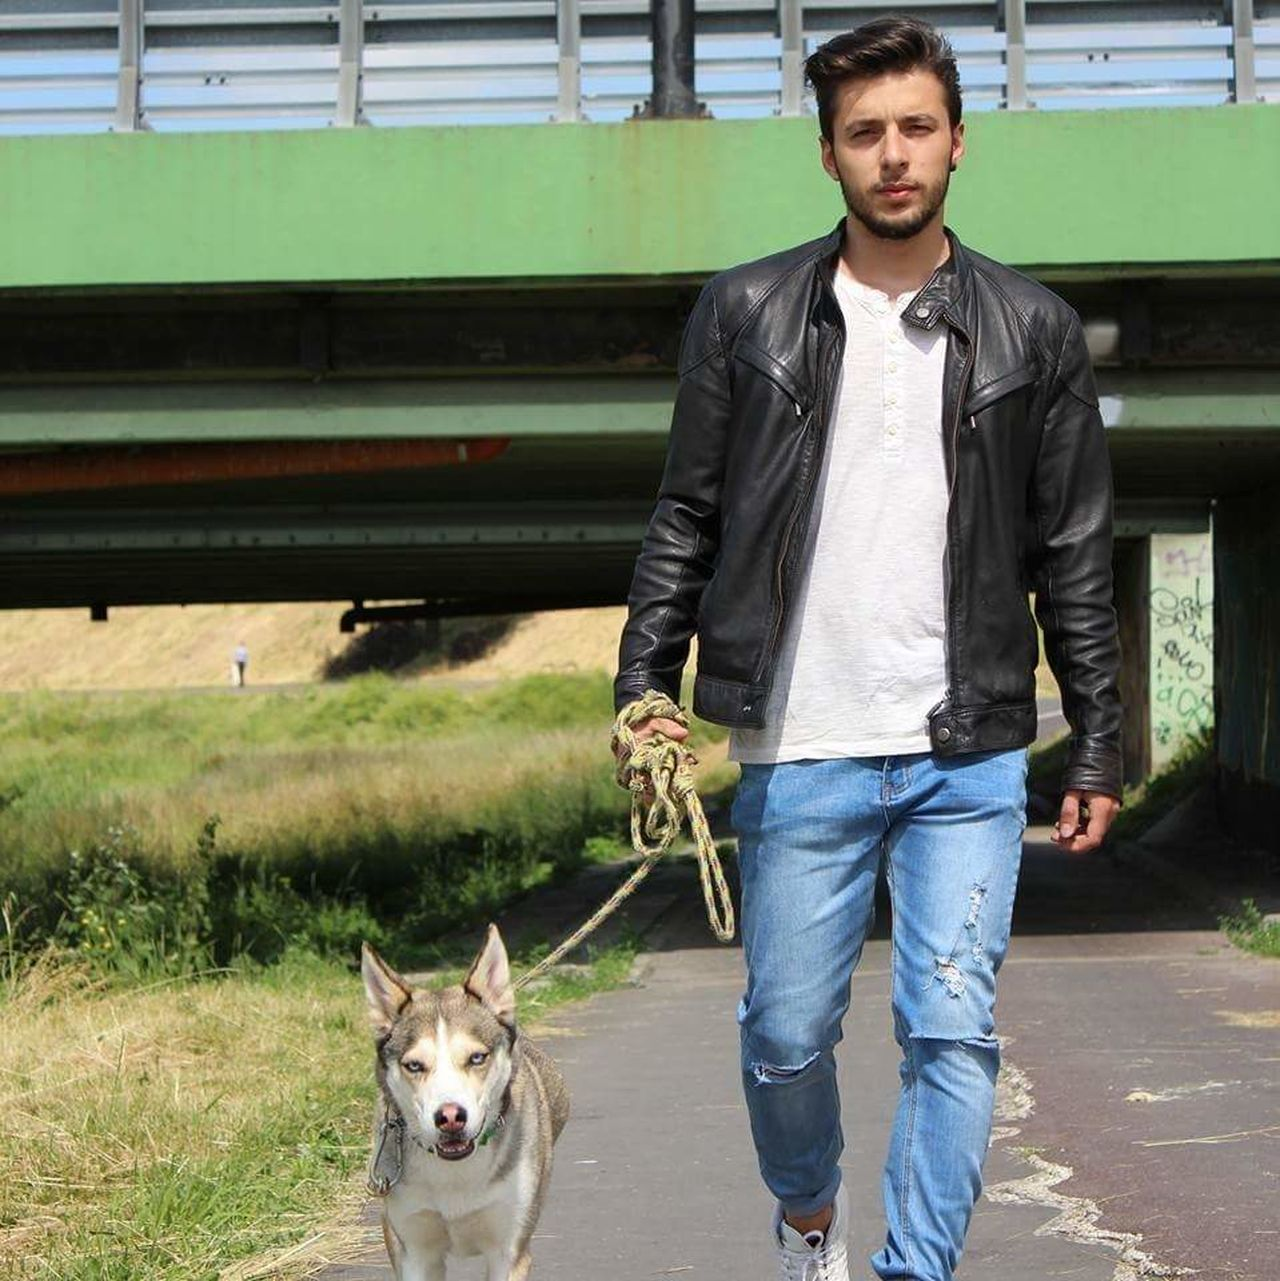 Transportation Standing One Animal Mammal Casual Clothing Person Domestic Animals Mode Of Transport Travel Young Adult Full Length Lifestyles Leisure Activity Front View Pet Owner Pets Railroad Station Platform Outdoors